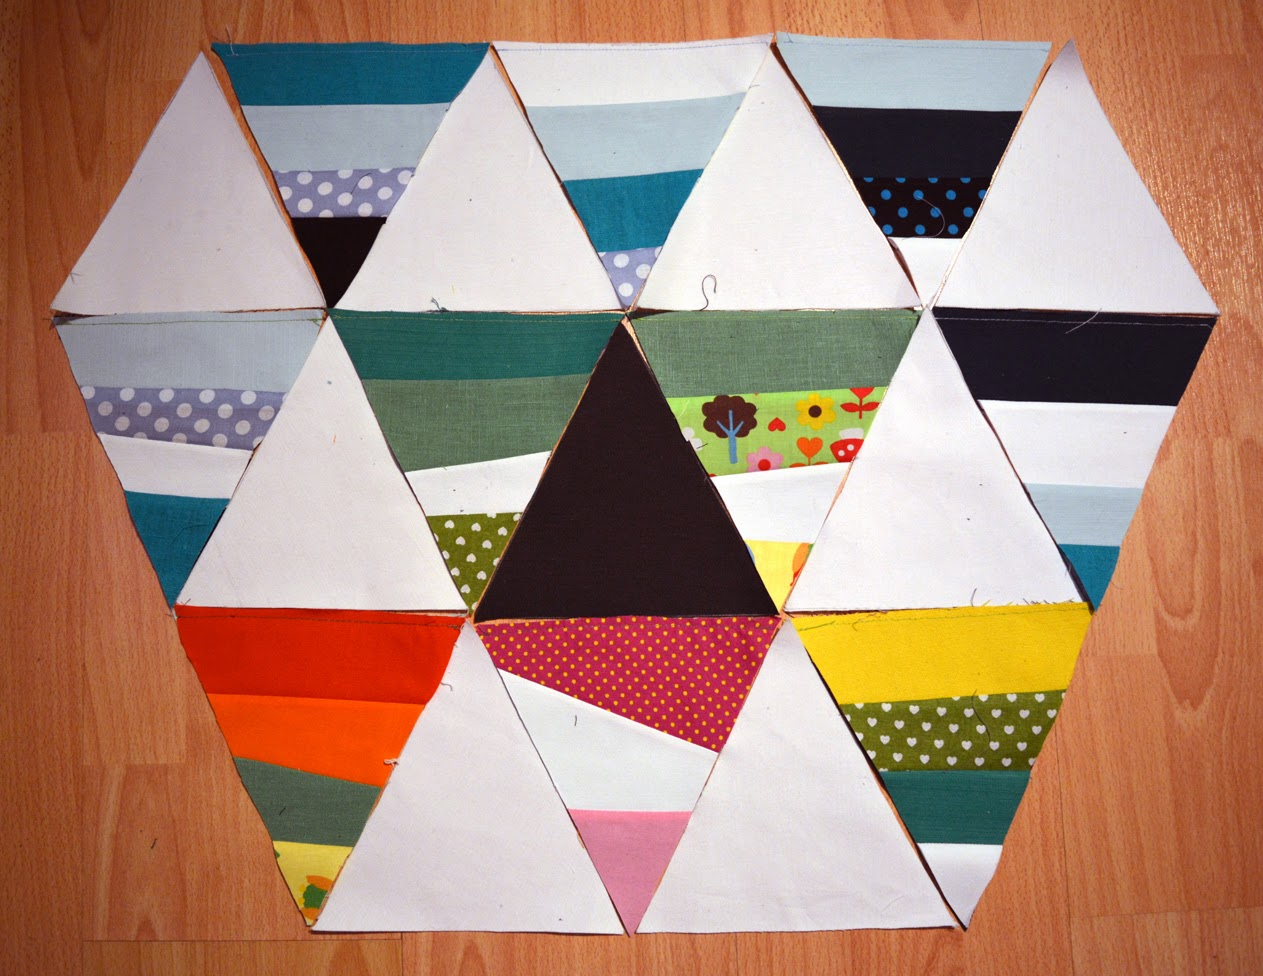 [Nähen] Resteverwertungs Patchwork